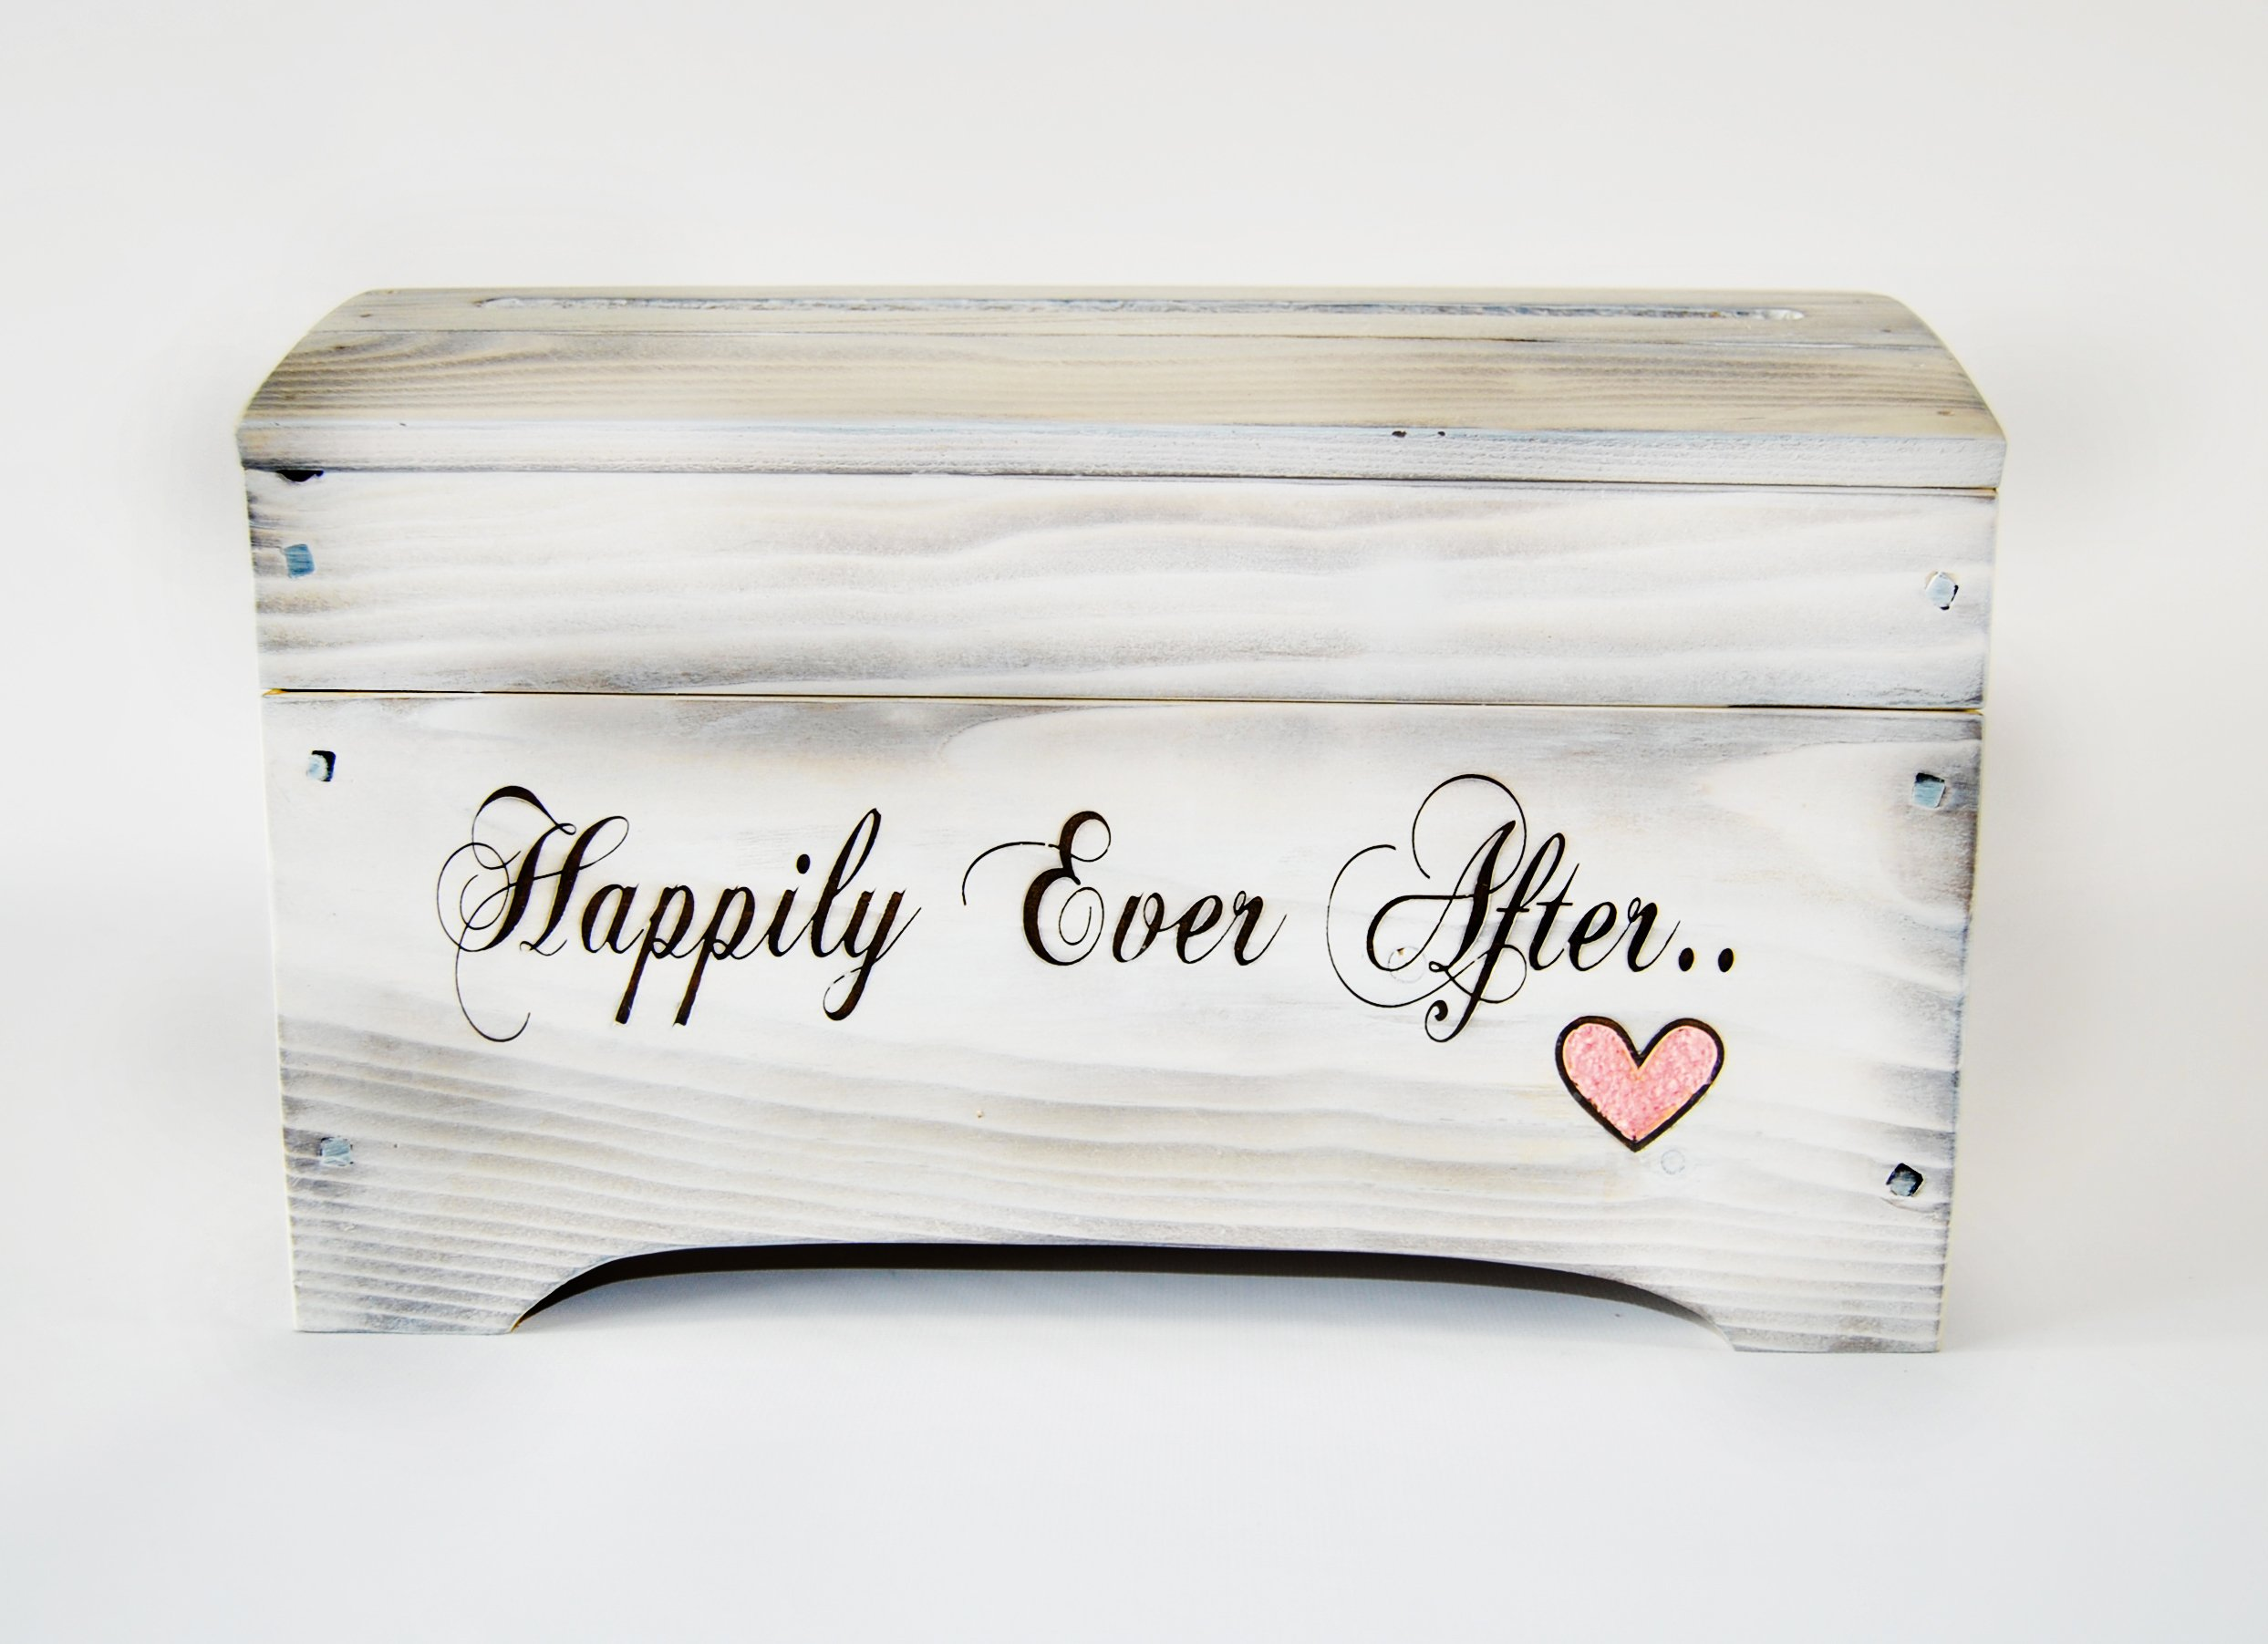 Large Wooden Shabby Chic Keepsake Memory Box - Wedding Card Box by Roxy Heart Vintage